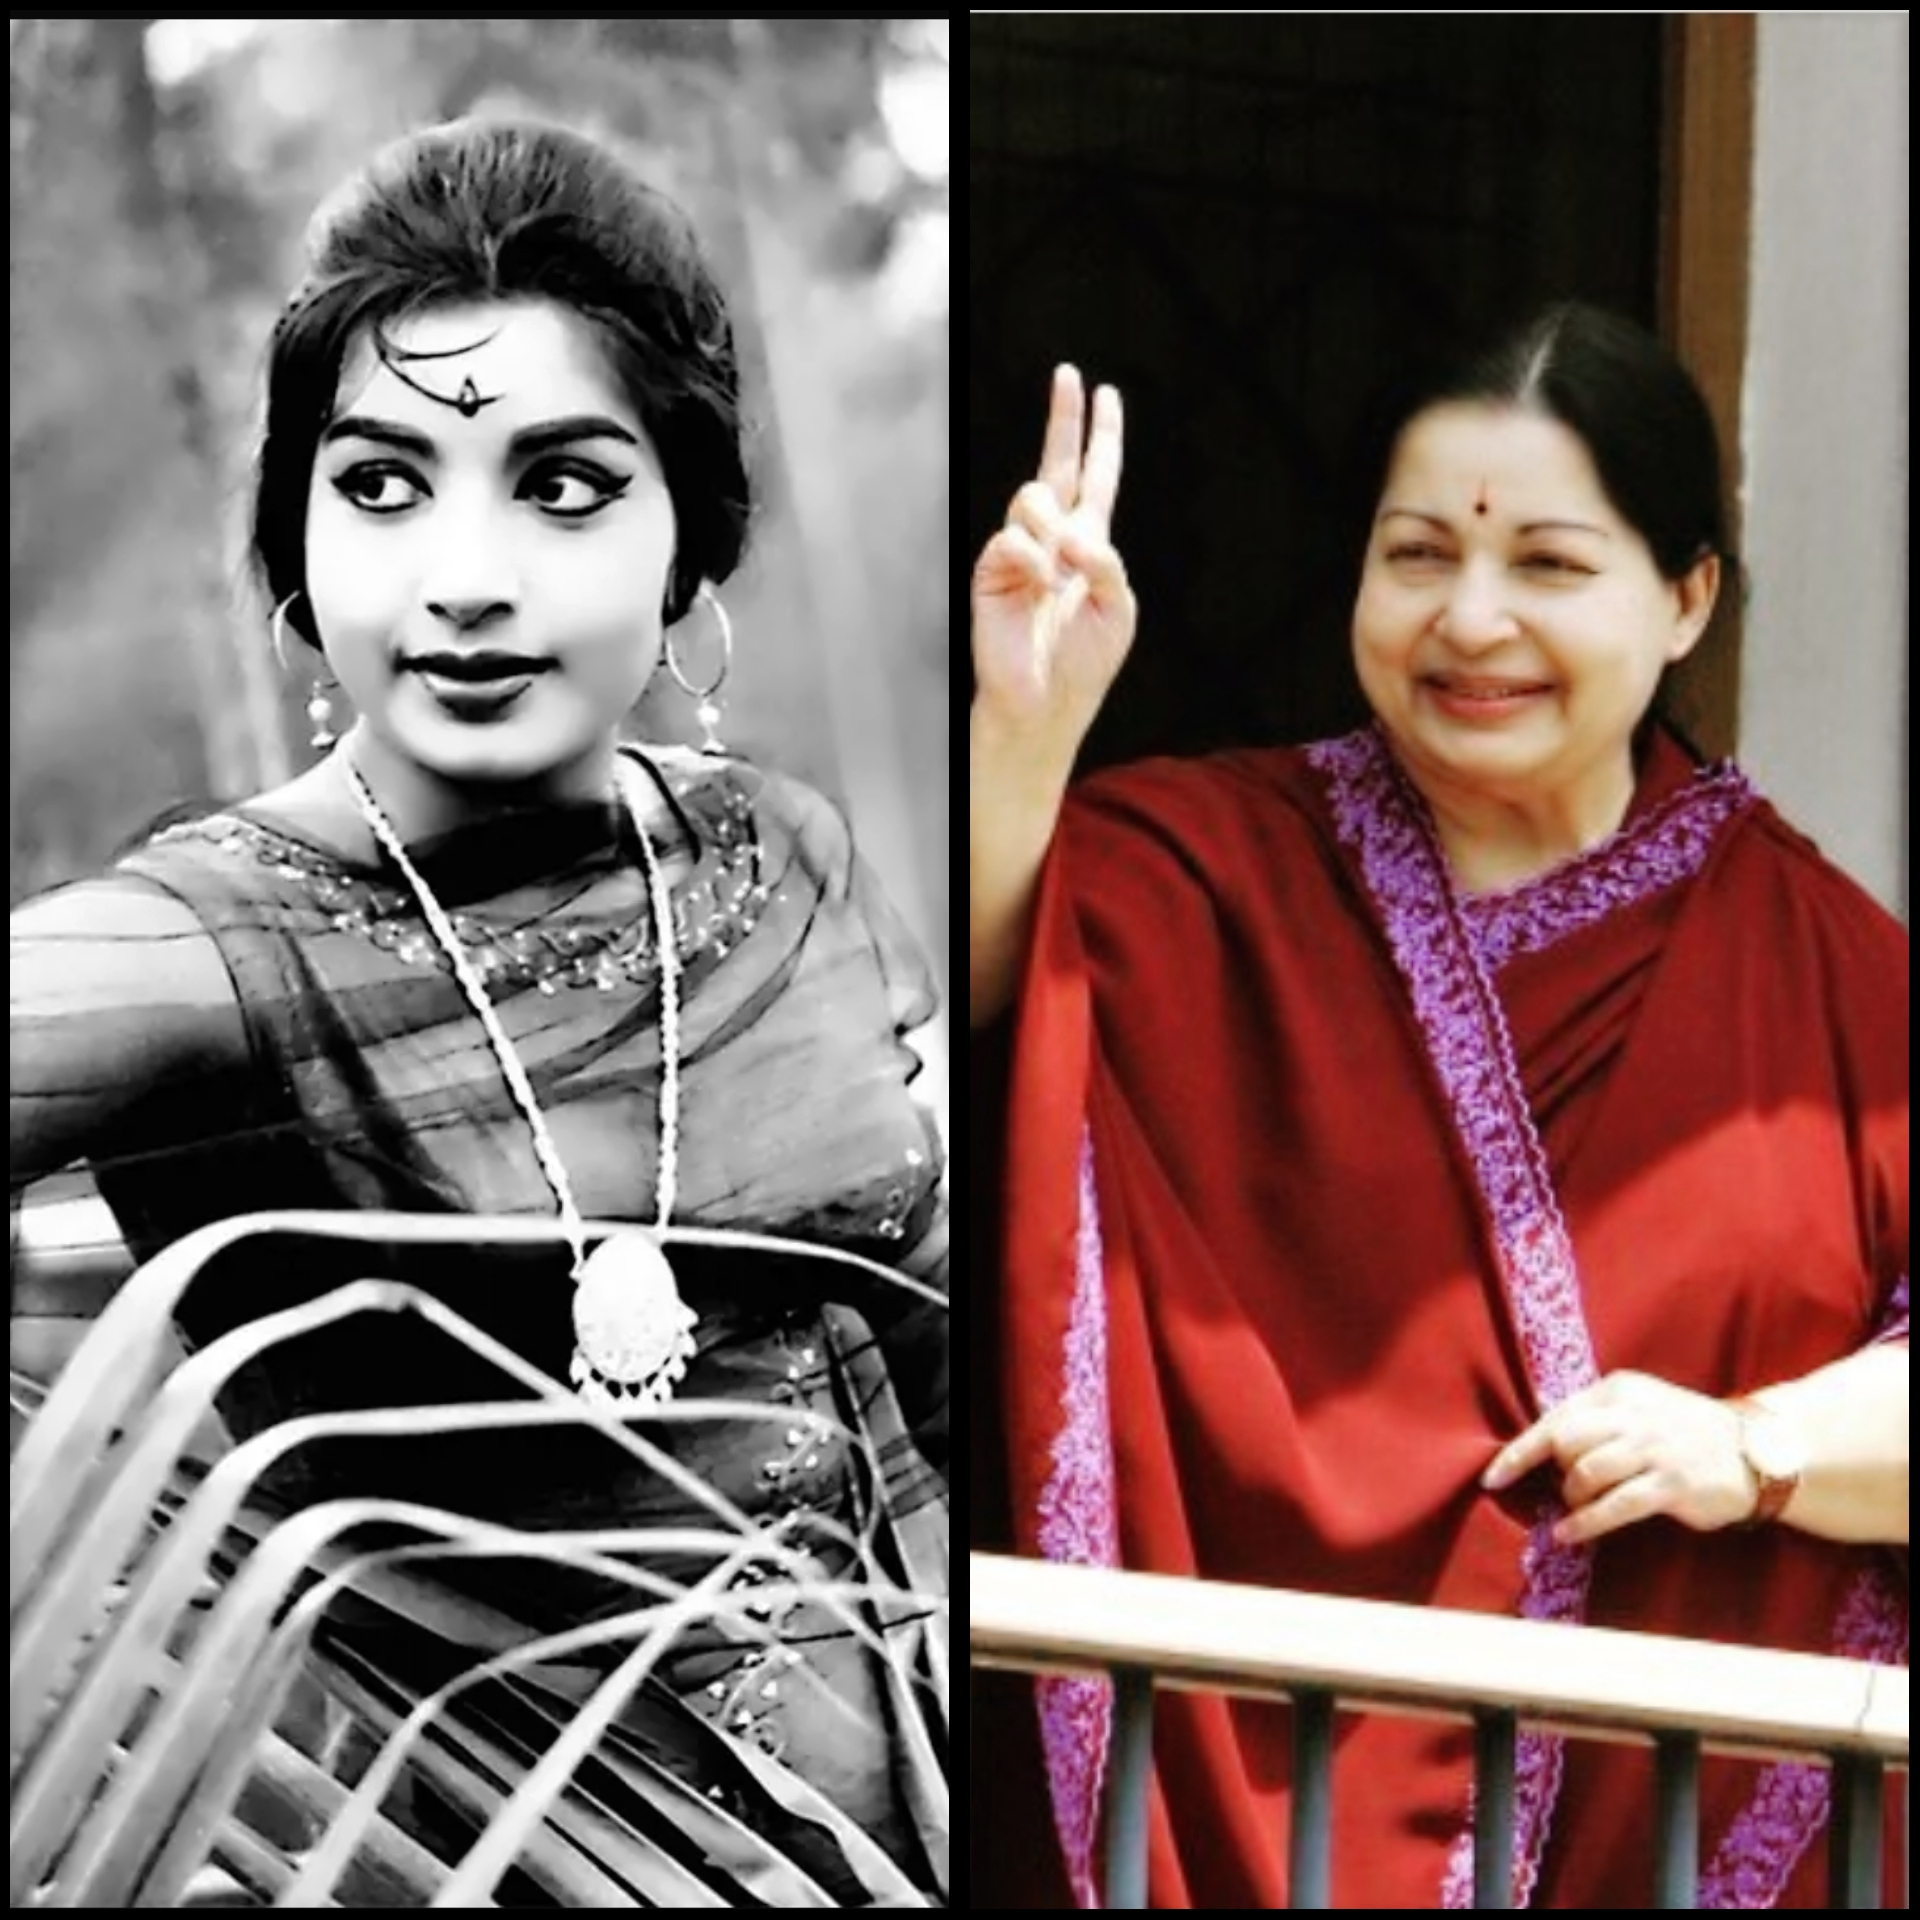 jayalalithaa, Indian Politicians, politics, unseen pictures, rare pictures,vintage pictures of Indian Politicians